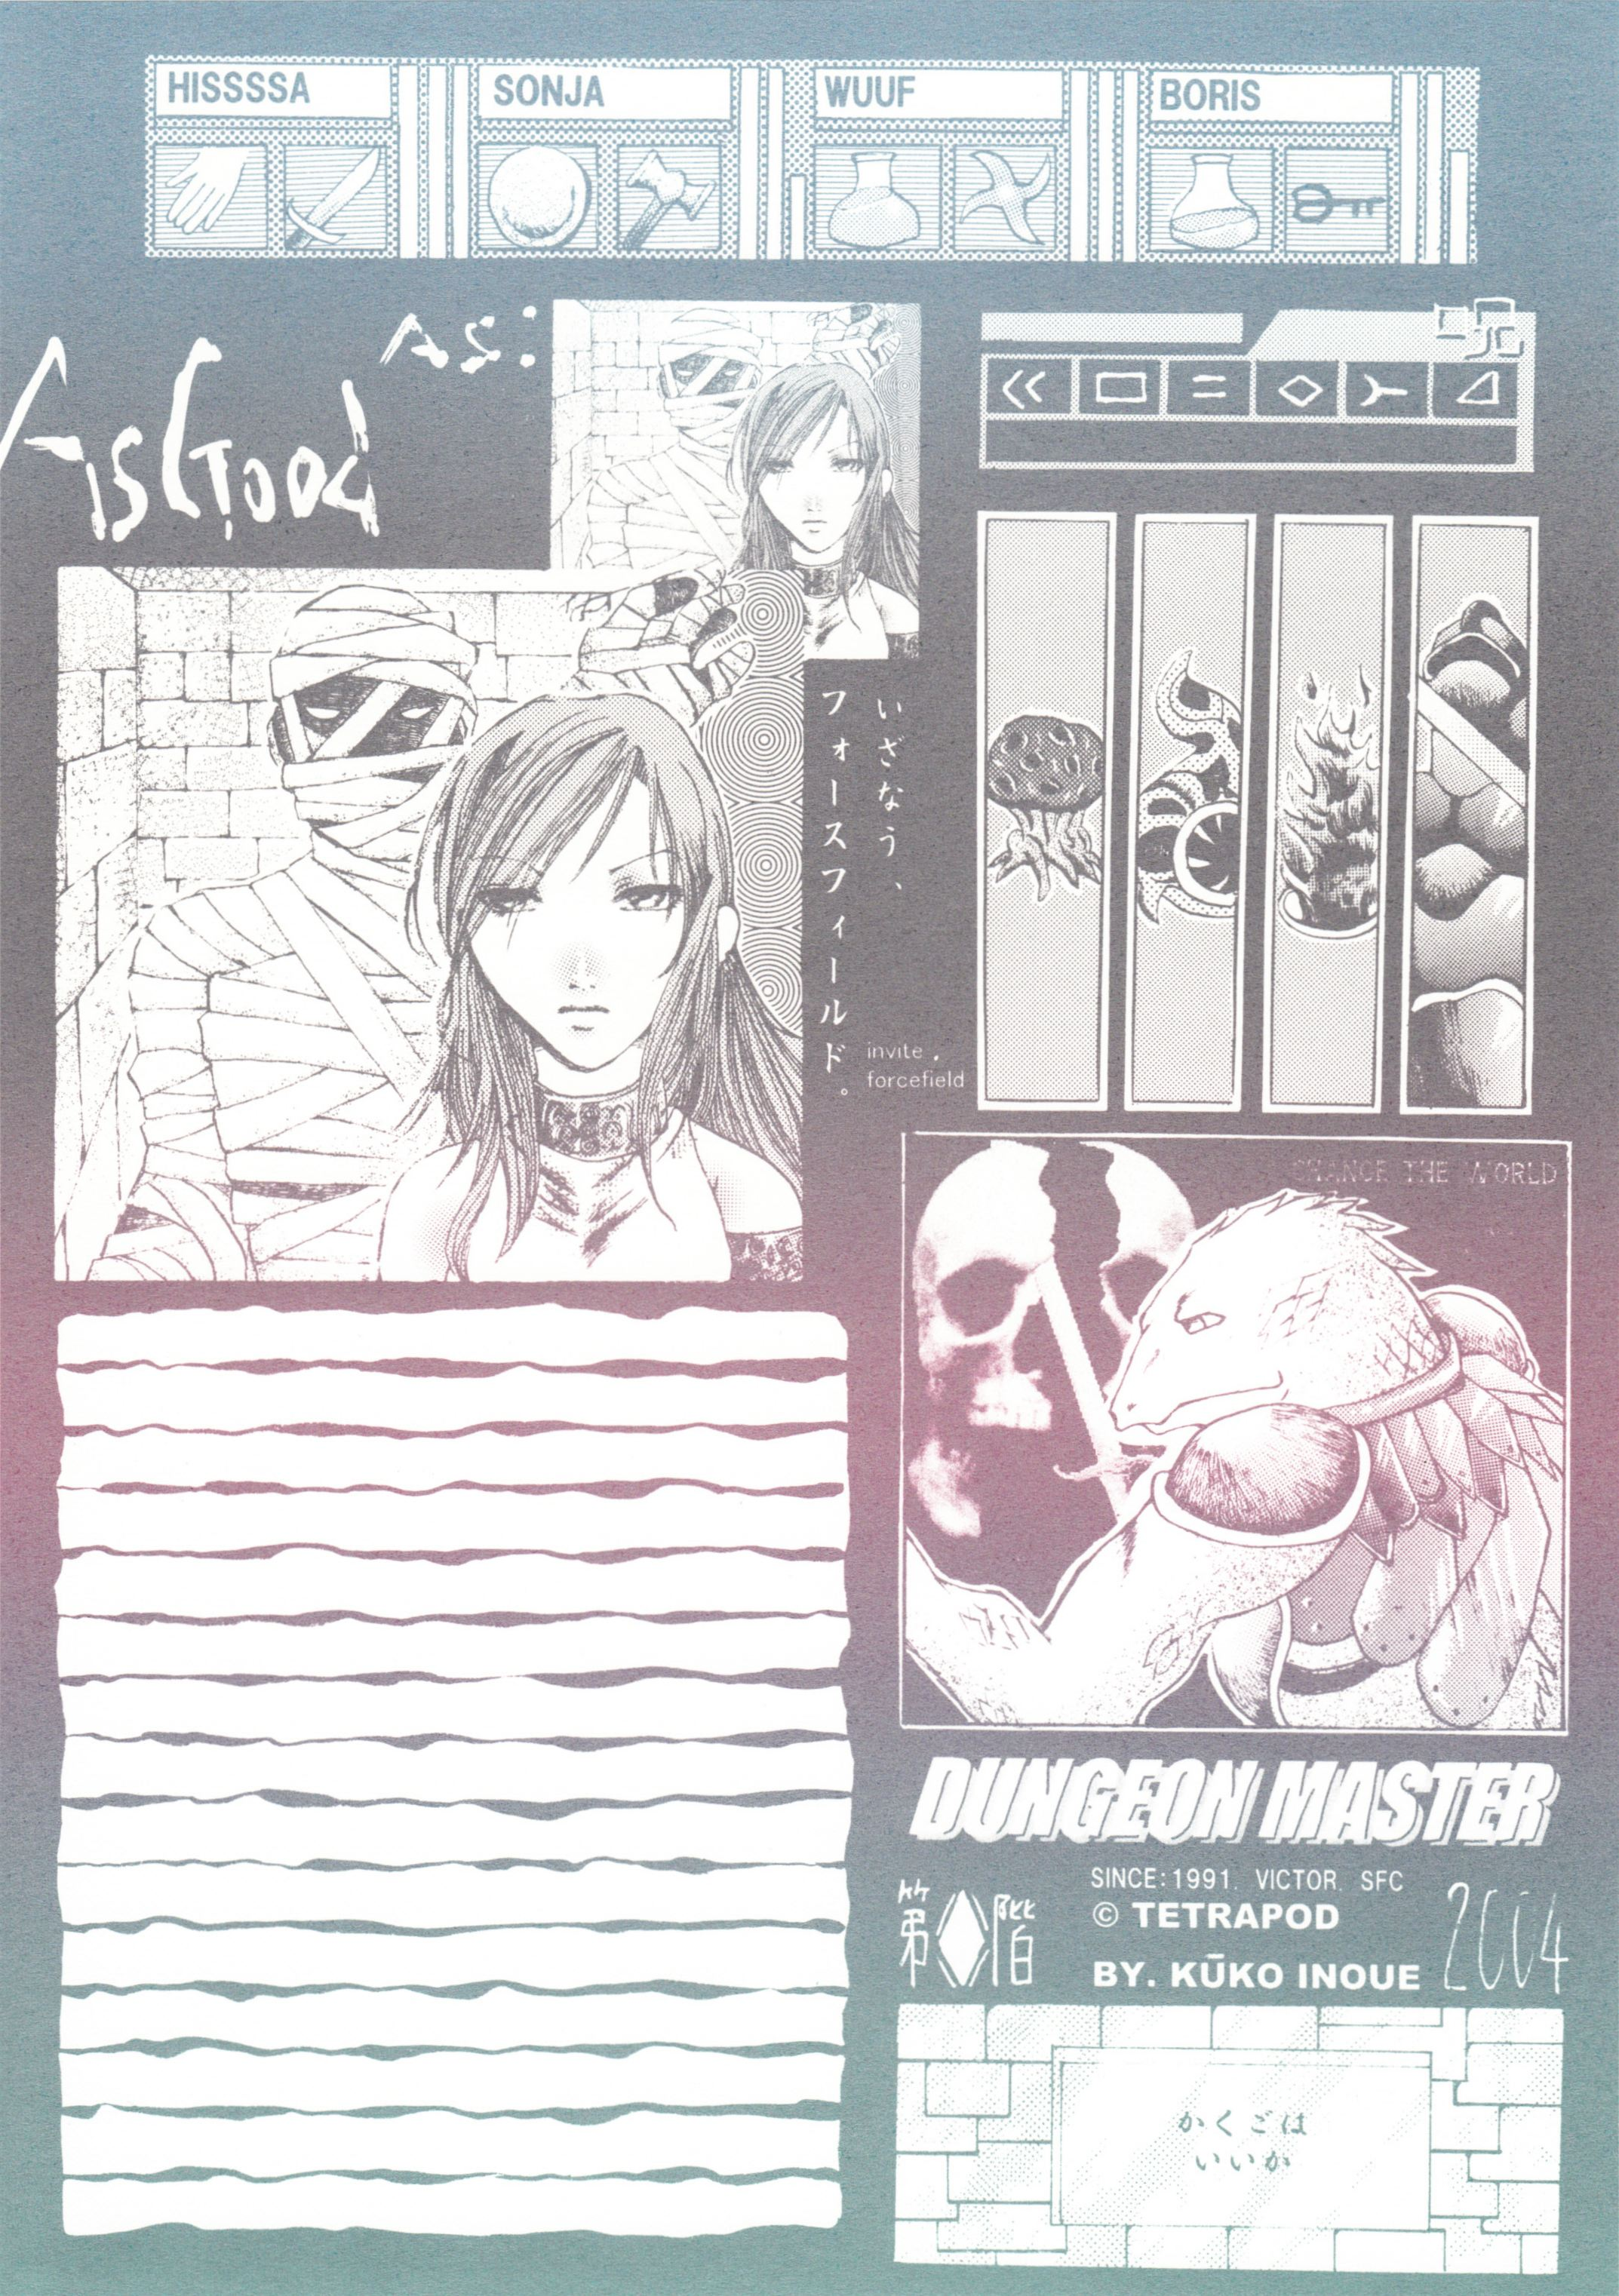 Notepaper - Dungeon Master - JP - Front - Scan